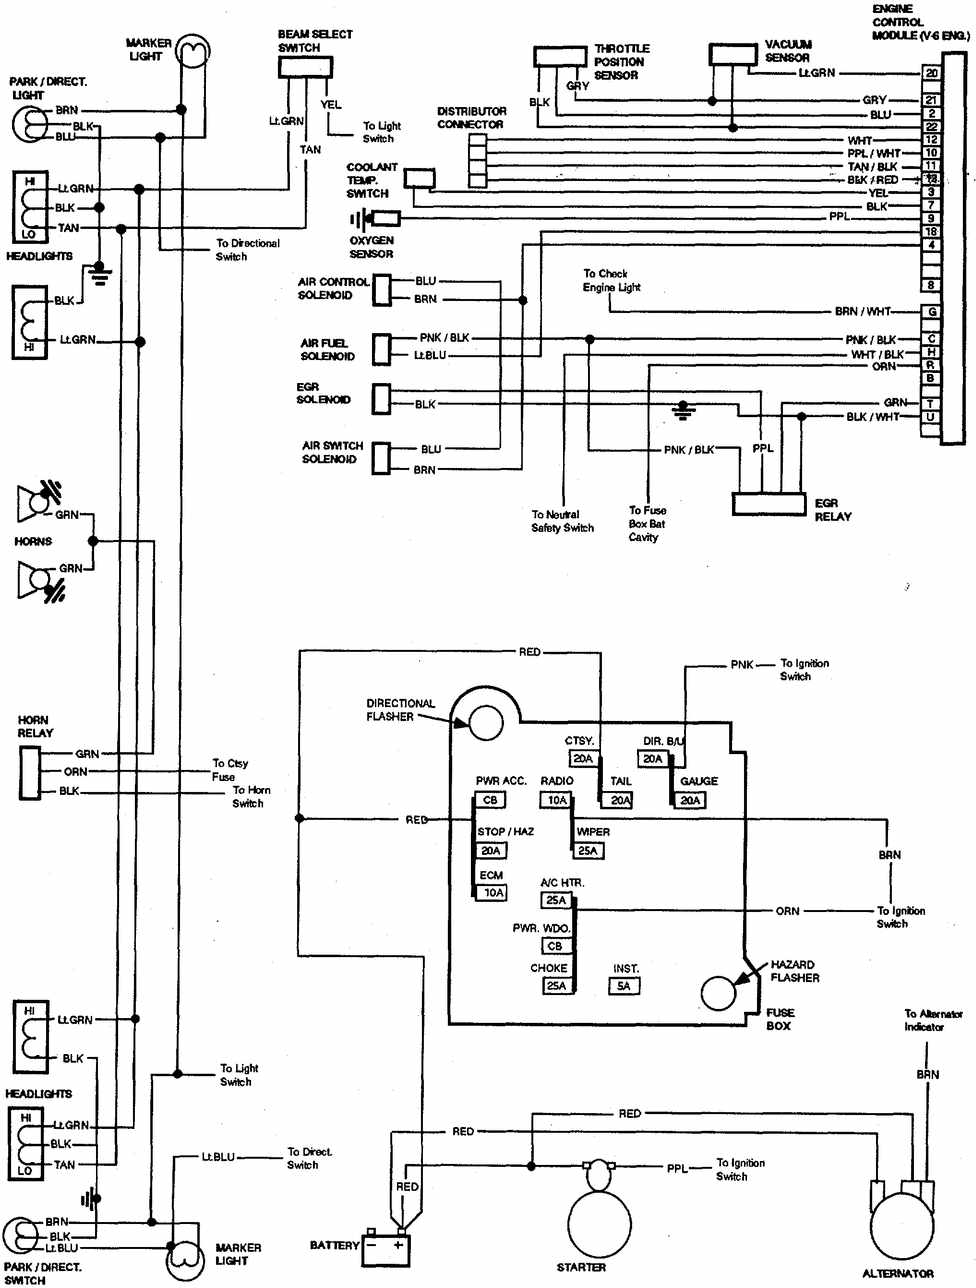 chevrolet v8 trucks 1981-1987 electrical wiring diagram ... 1981 c10 wiring diagram 1981 suzuki wiring diagram #9